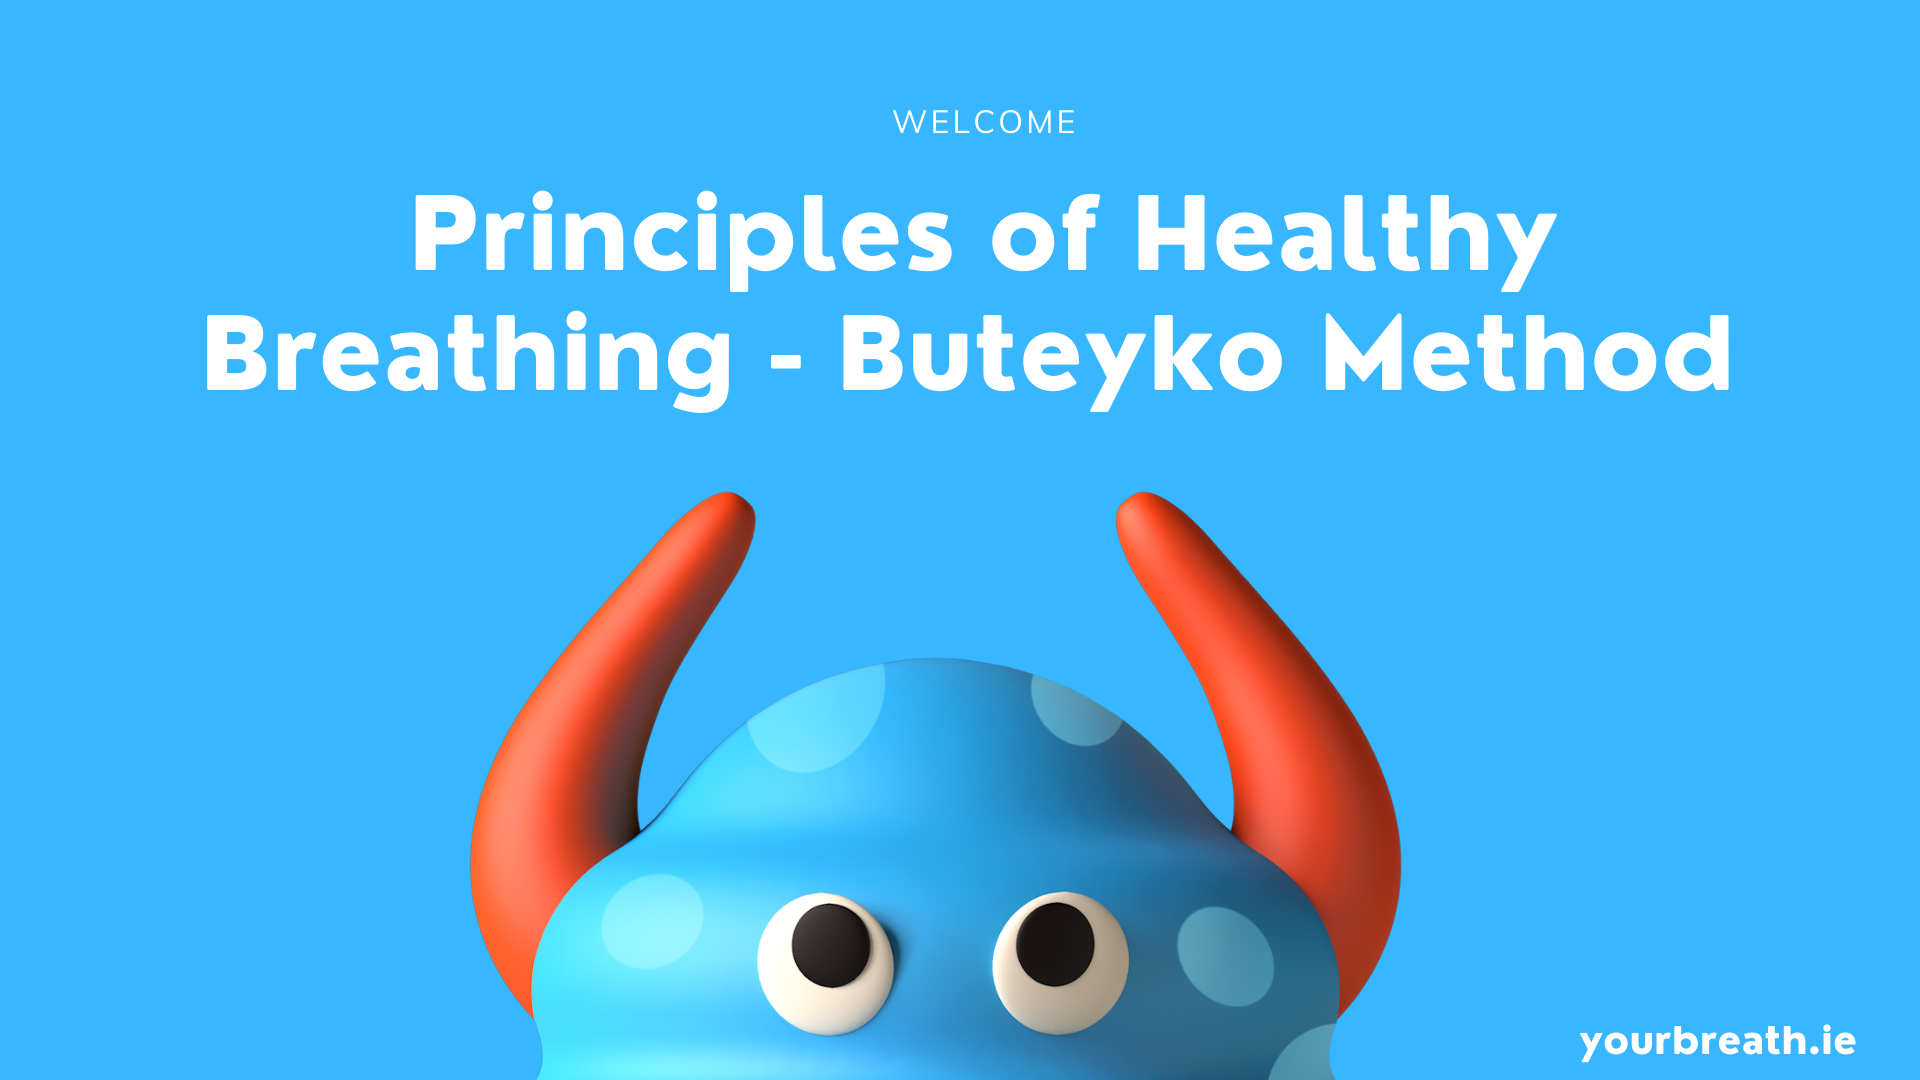 A cover of an online course on the Principles of Healthy Breathing